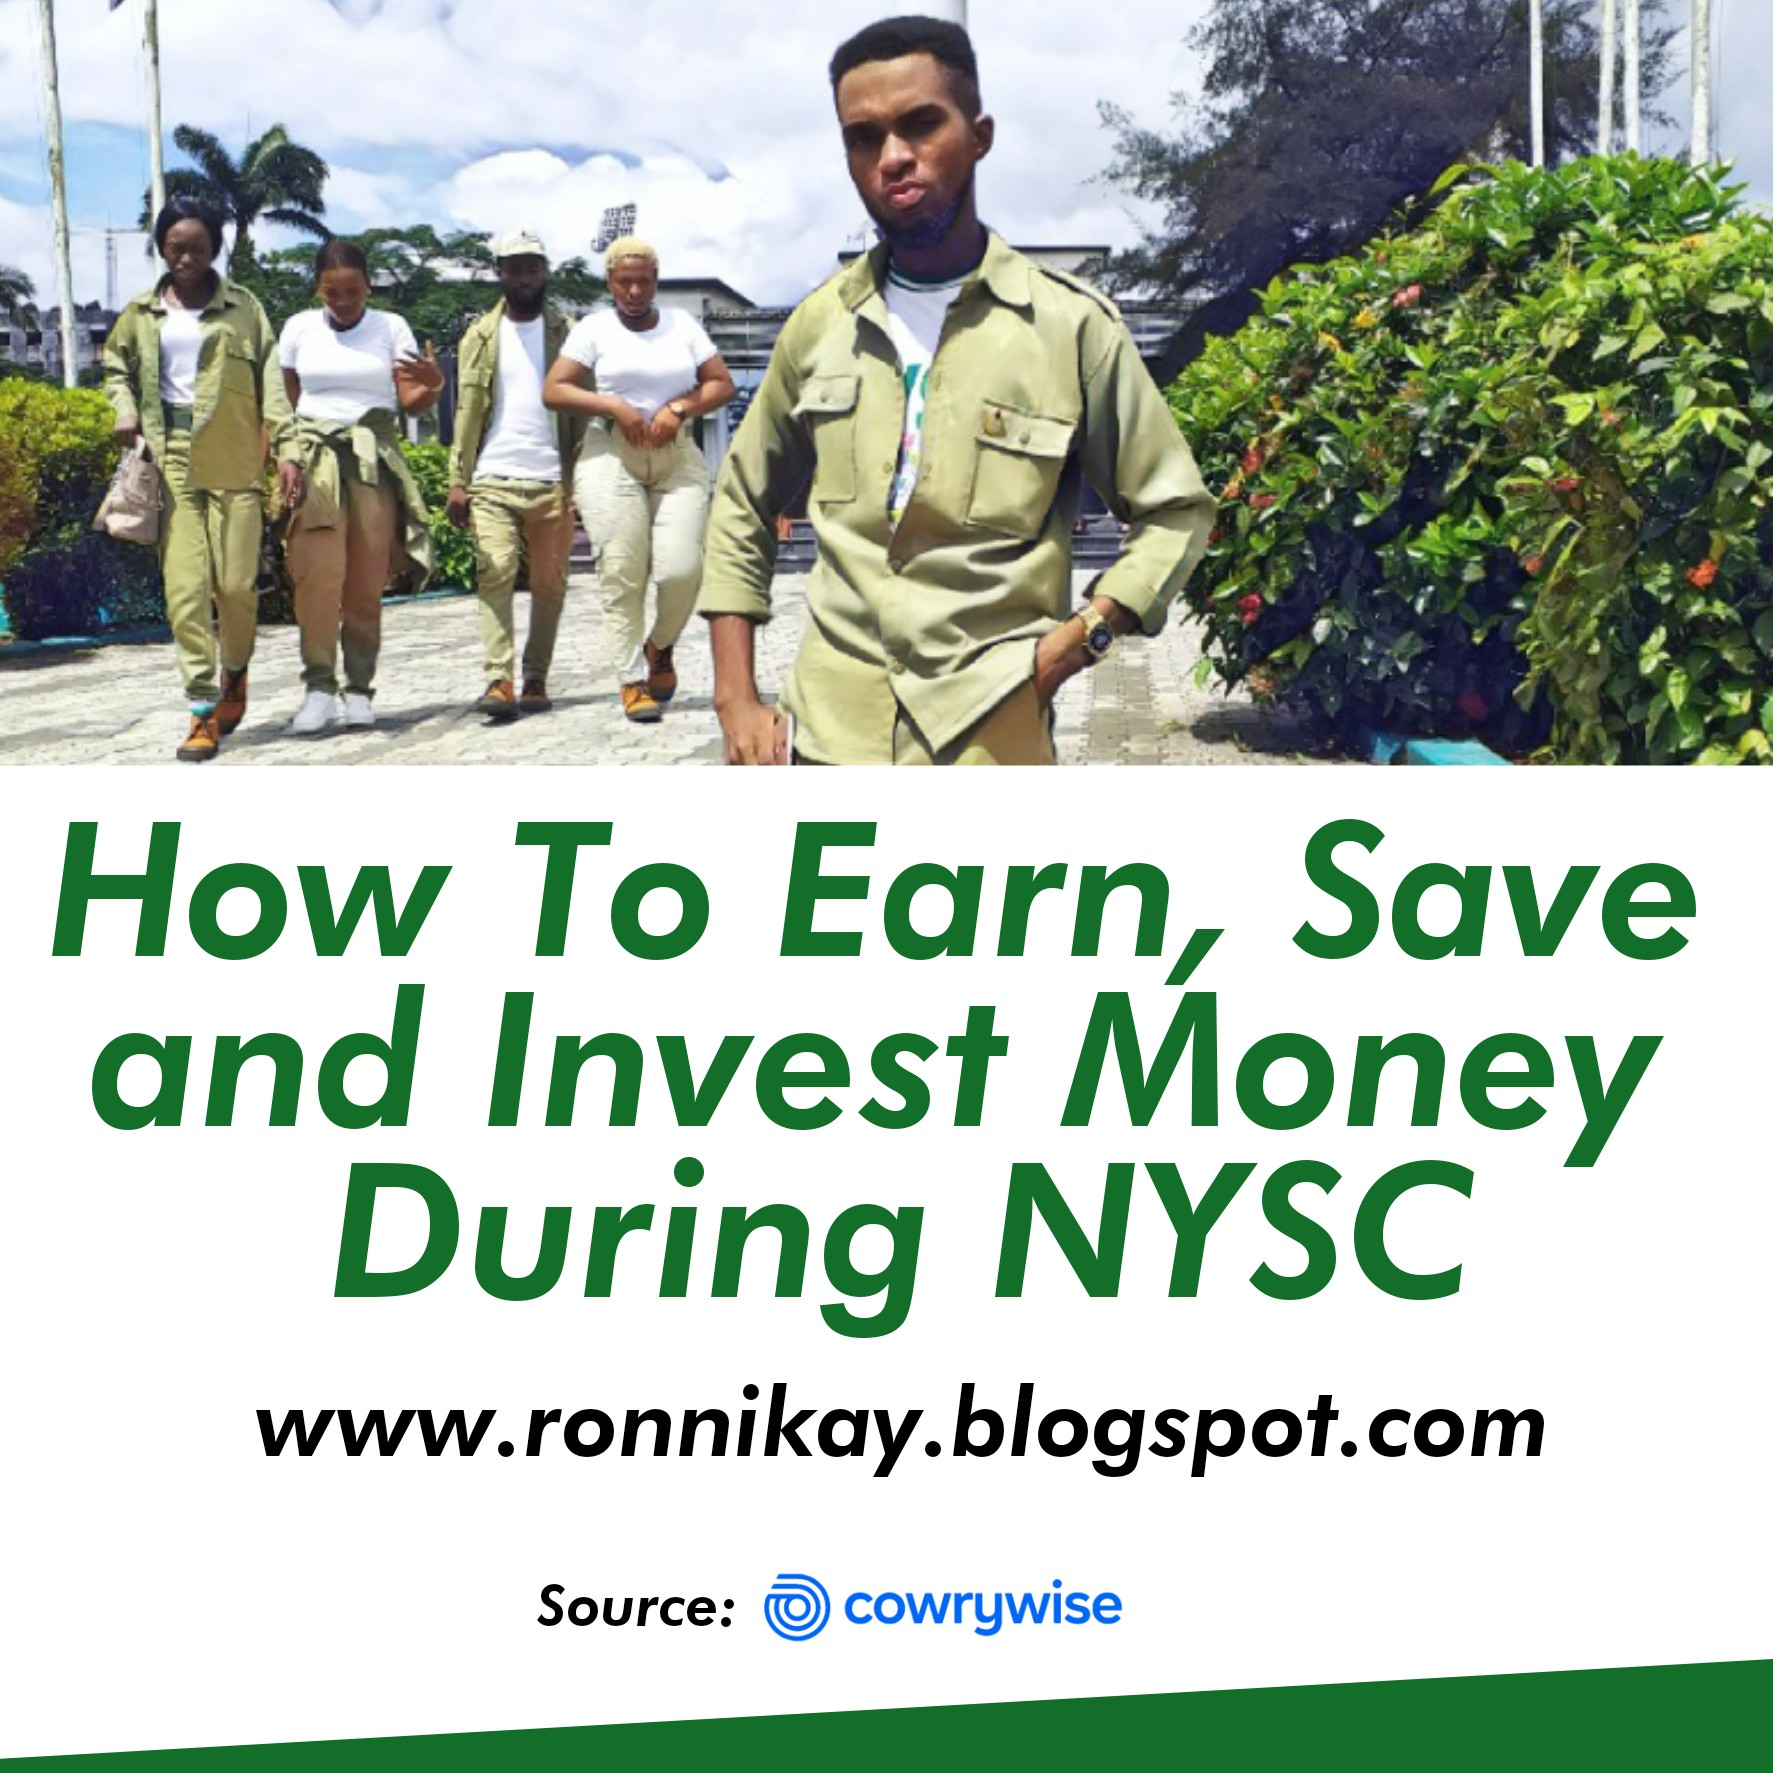 HOW TO EARN, SAVE AND INVEST MONEY DURING NYSC - Ronald Kenneth